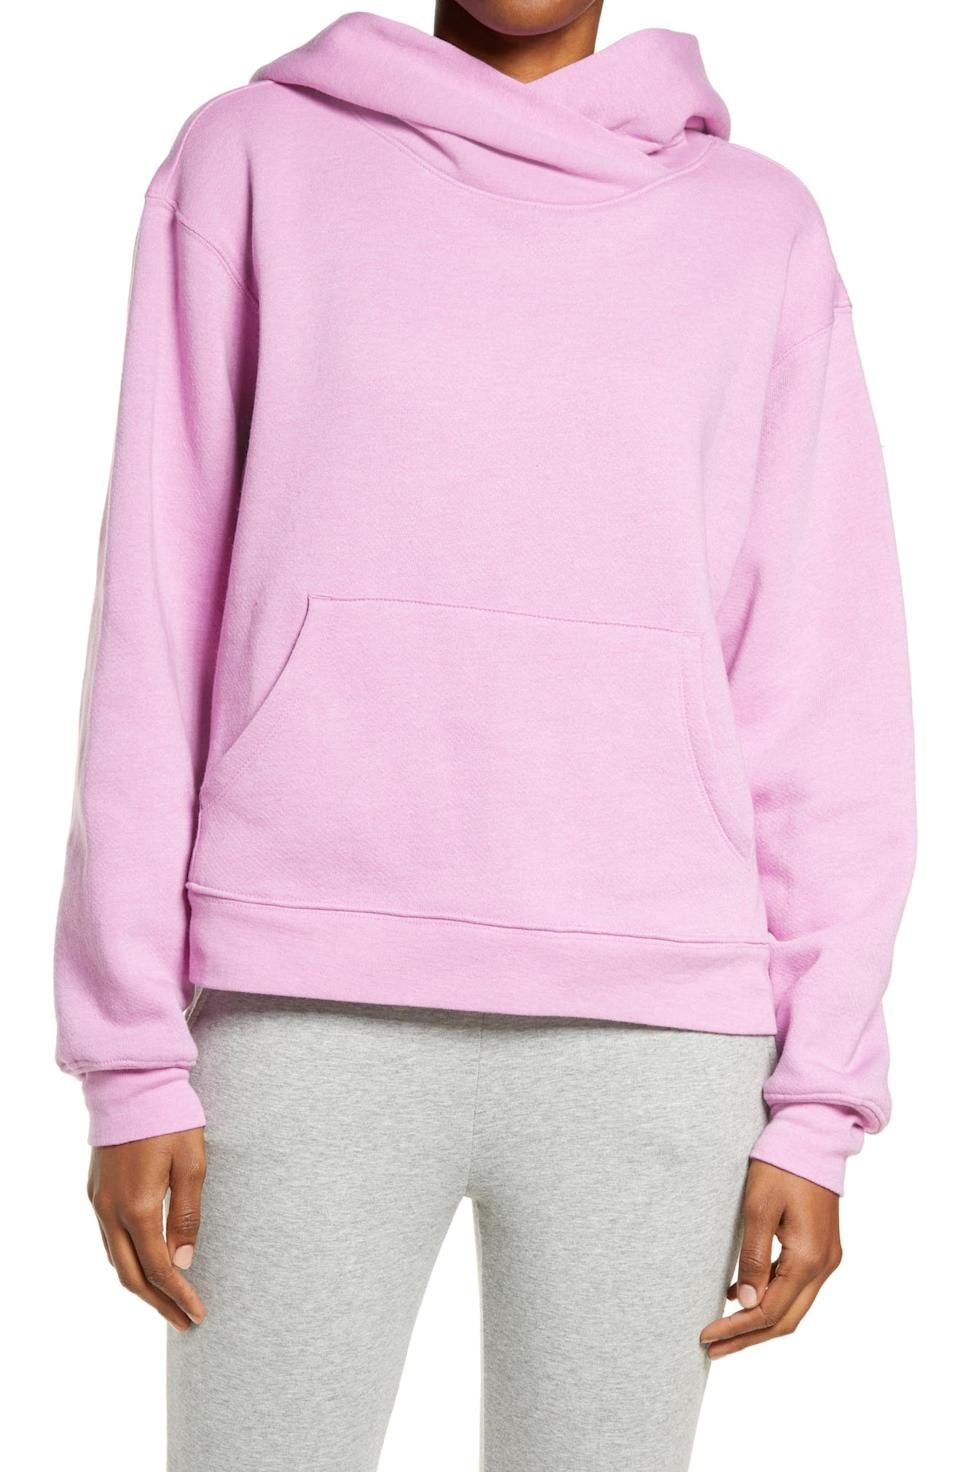 Zella Cali Fleece Hooded Sweatshirt. Image via Nordstrom.